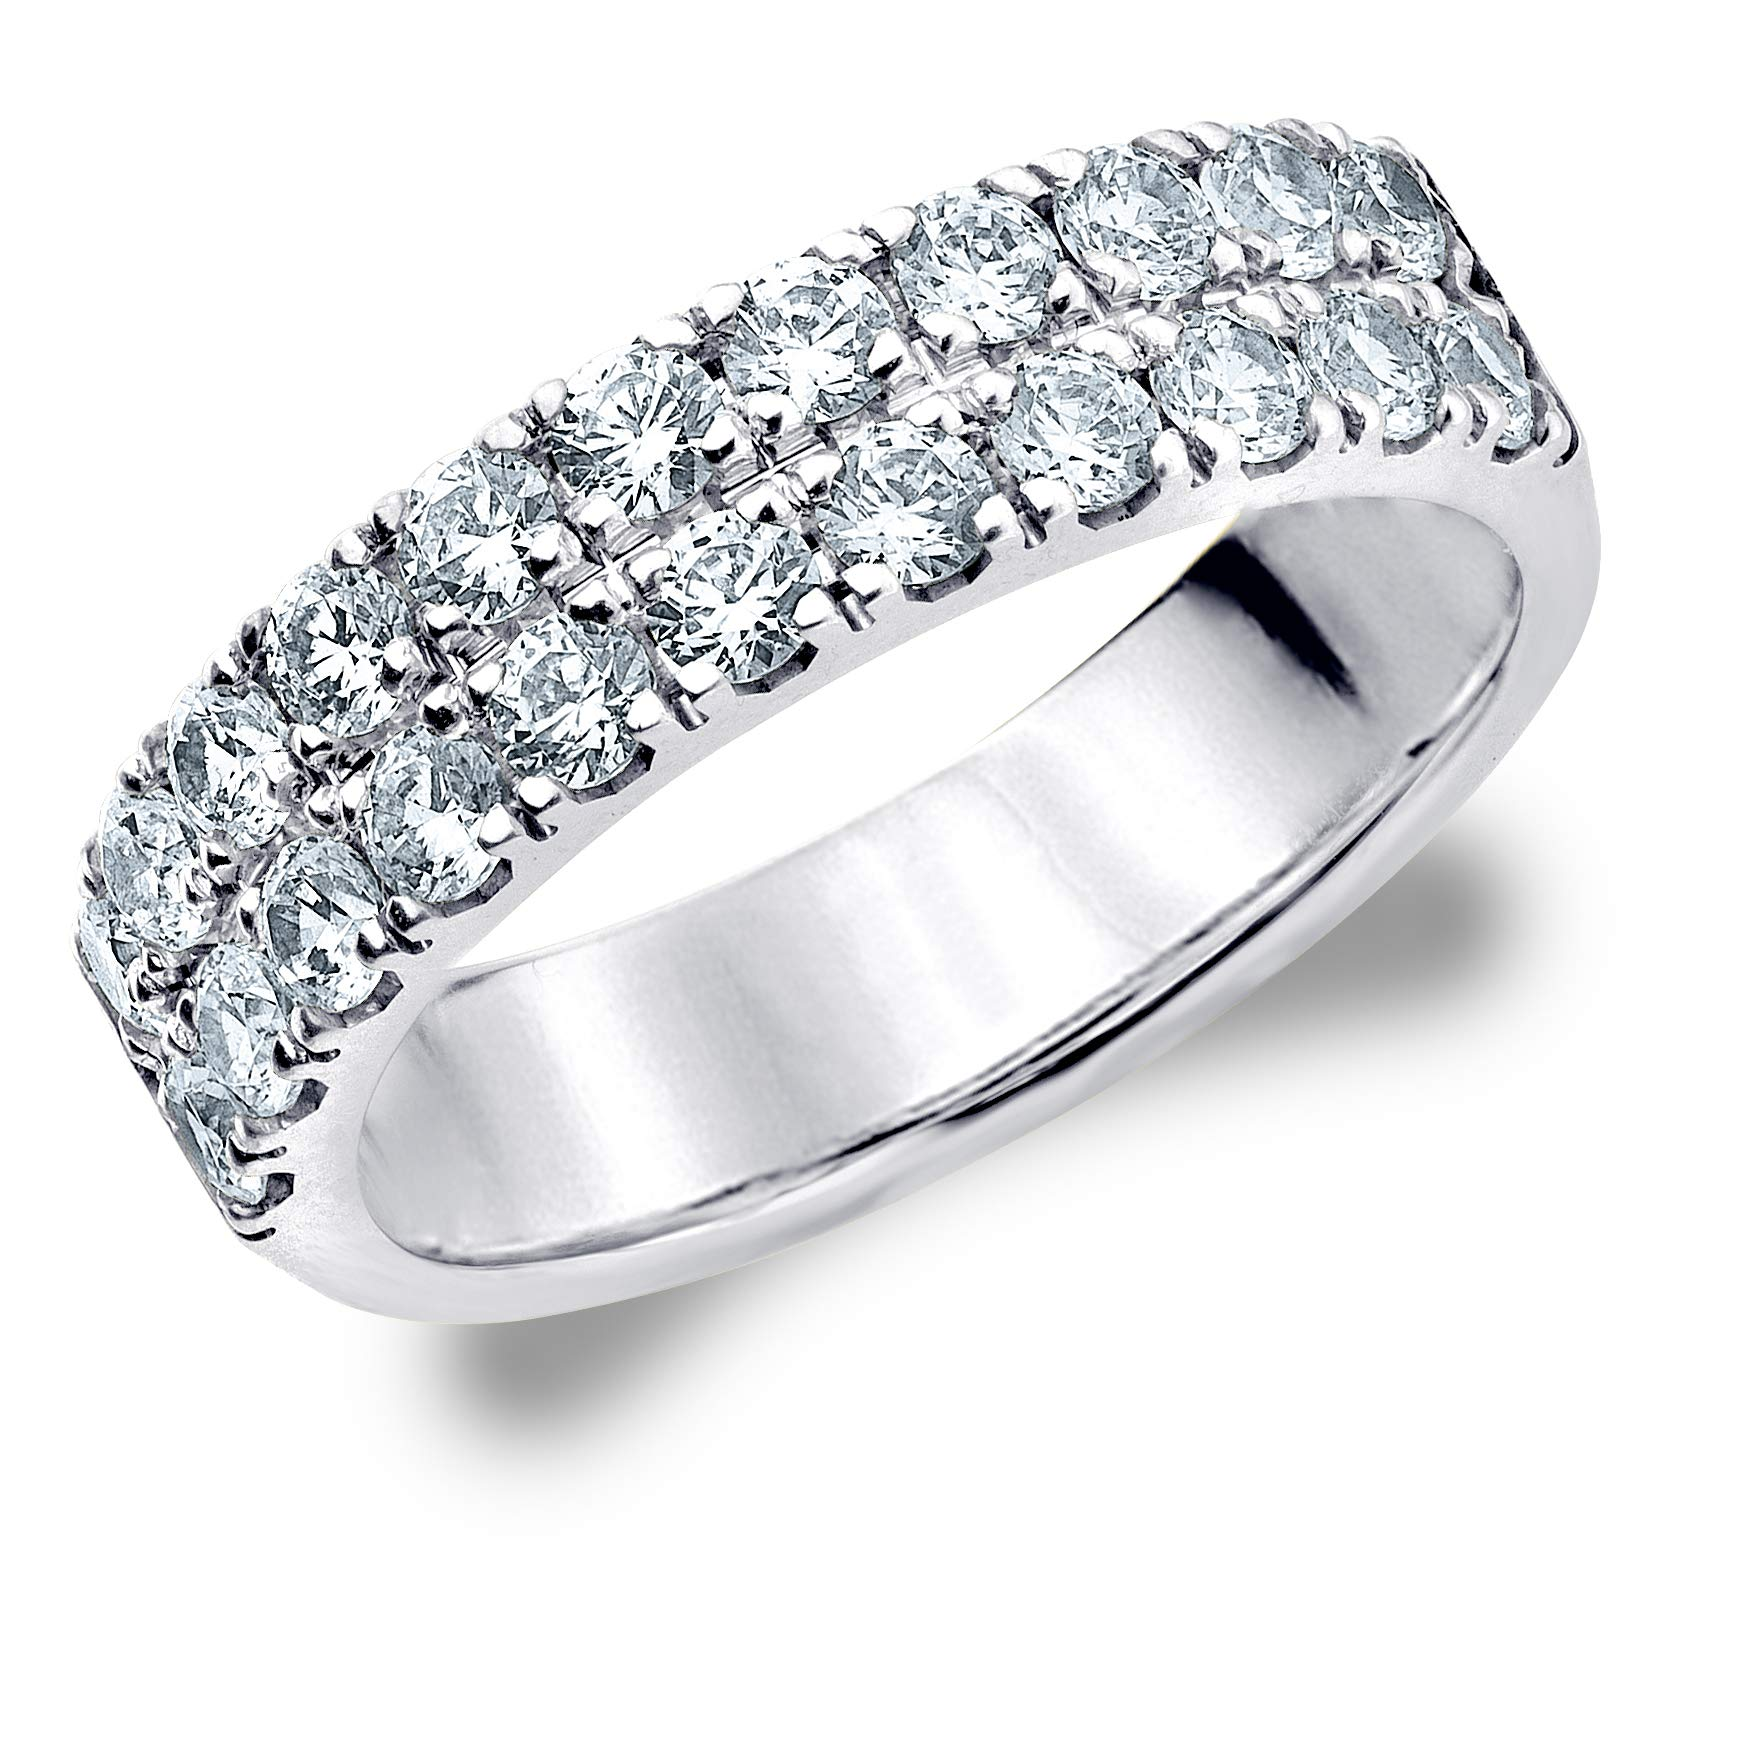 1 CT Double Row Lab Grown Diamond Ring in 14K White Gold, Sparkling in E-F Color and VS Clarity- Finger Size 4.5